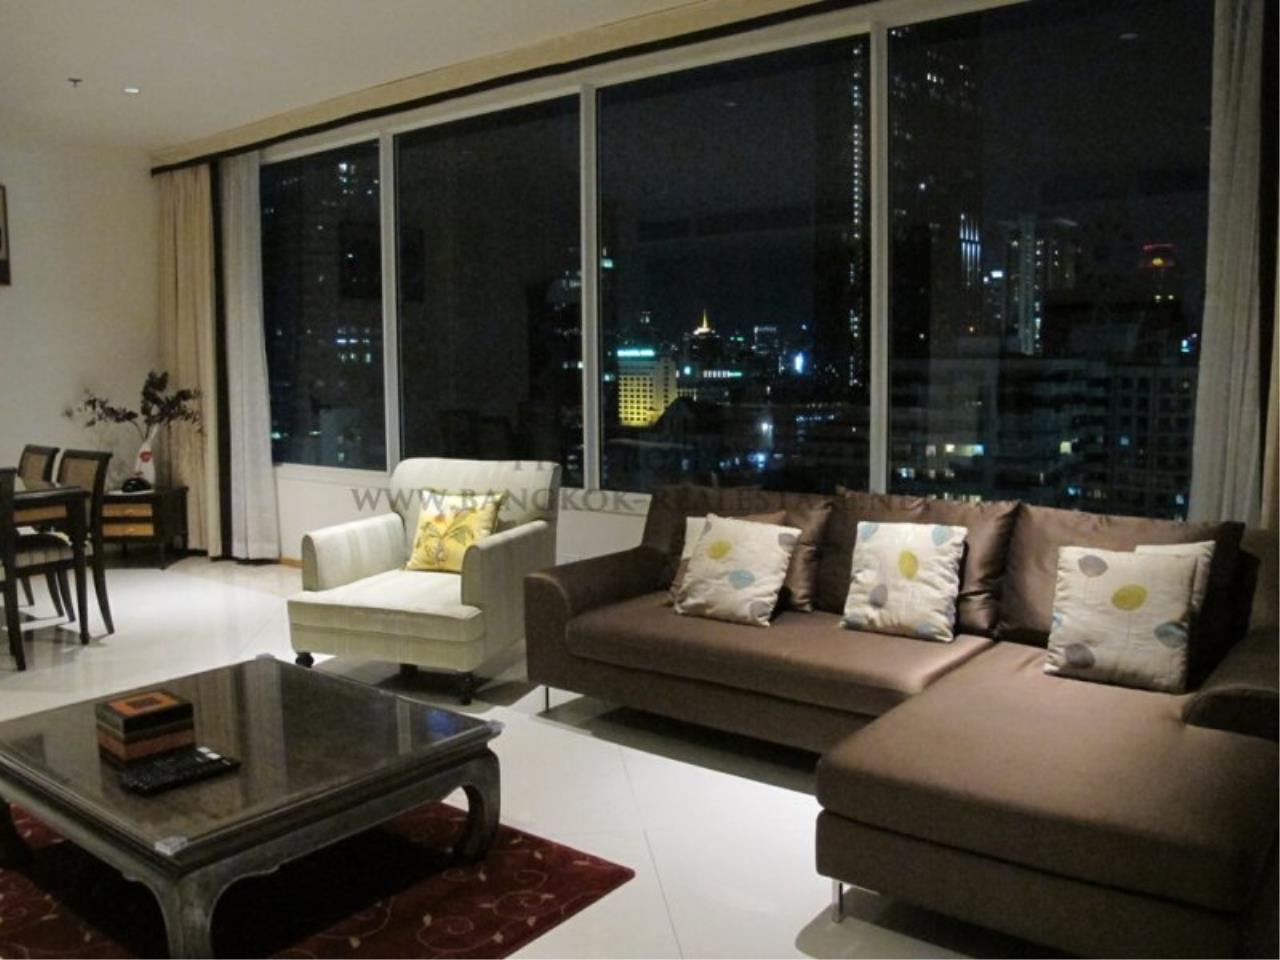 Piri Property Agency's Empire Place Sathorn - 2 Bedroom for Rent - Fully furnished Unit on High Floor 2